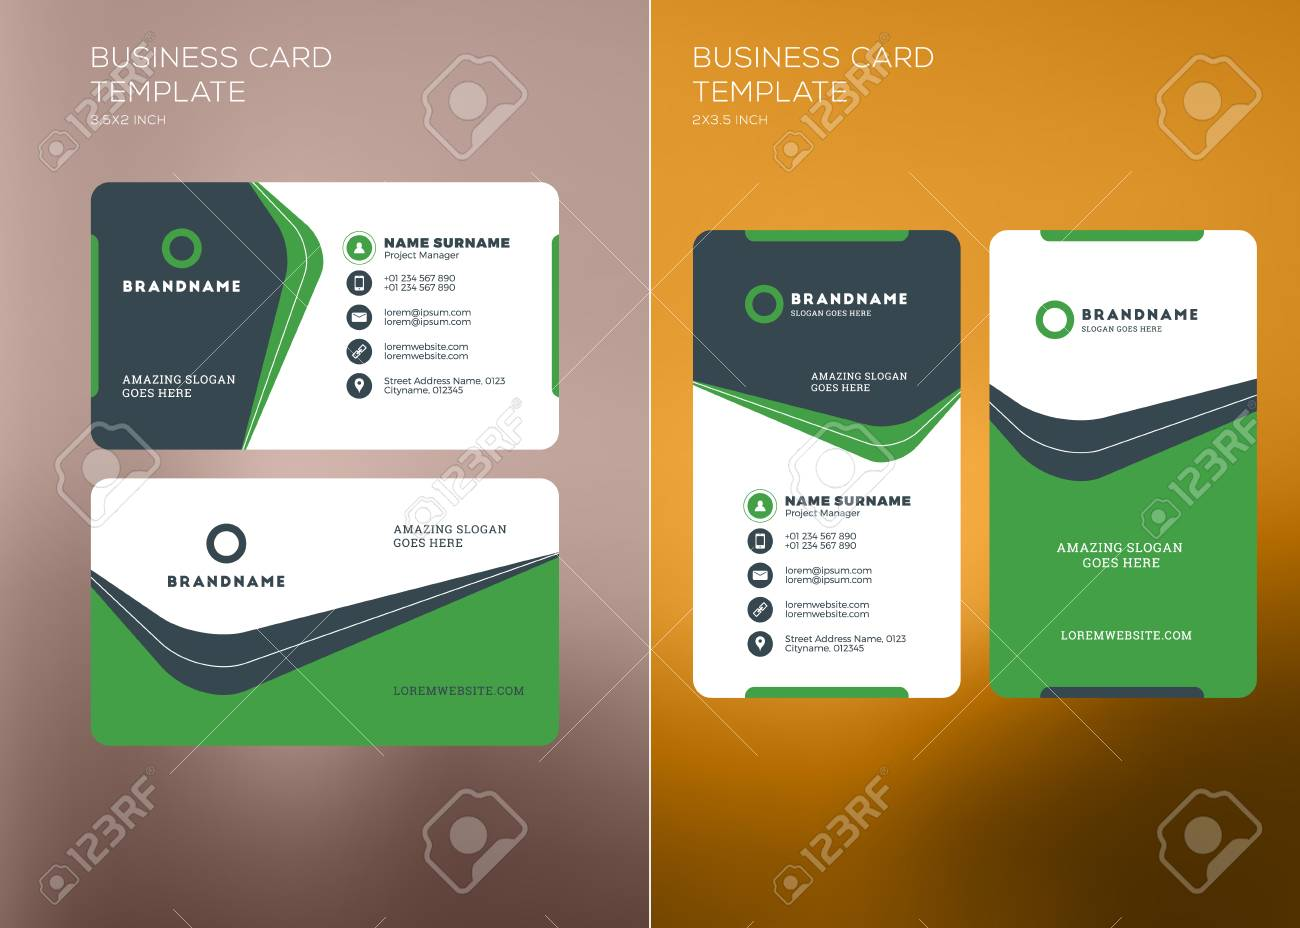 corporate business card print template personal visiting card with company logo vertical and horizontal - Business Card